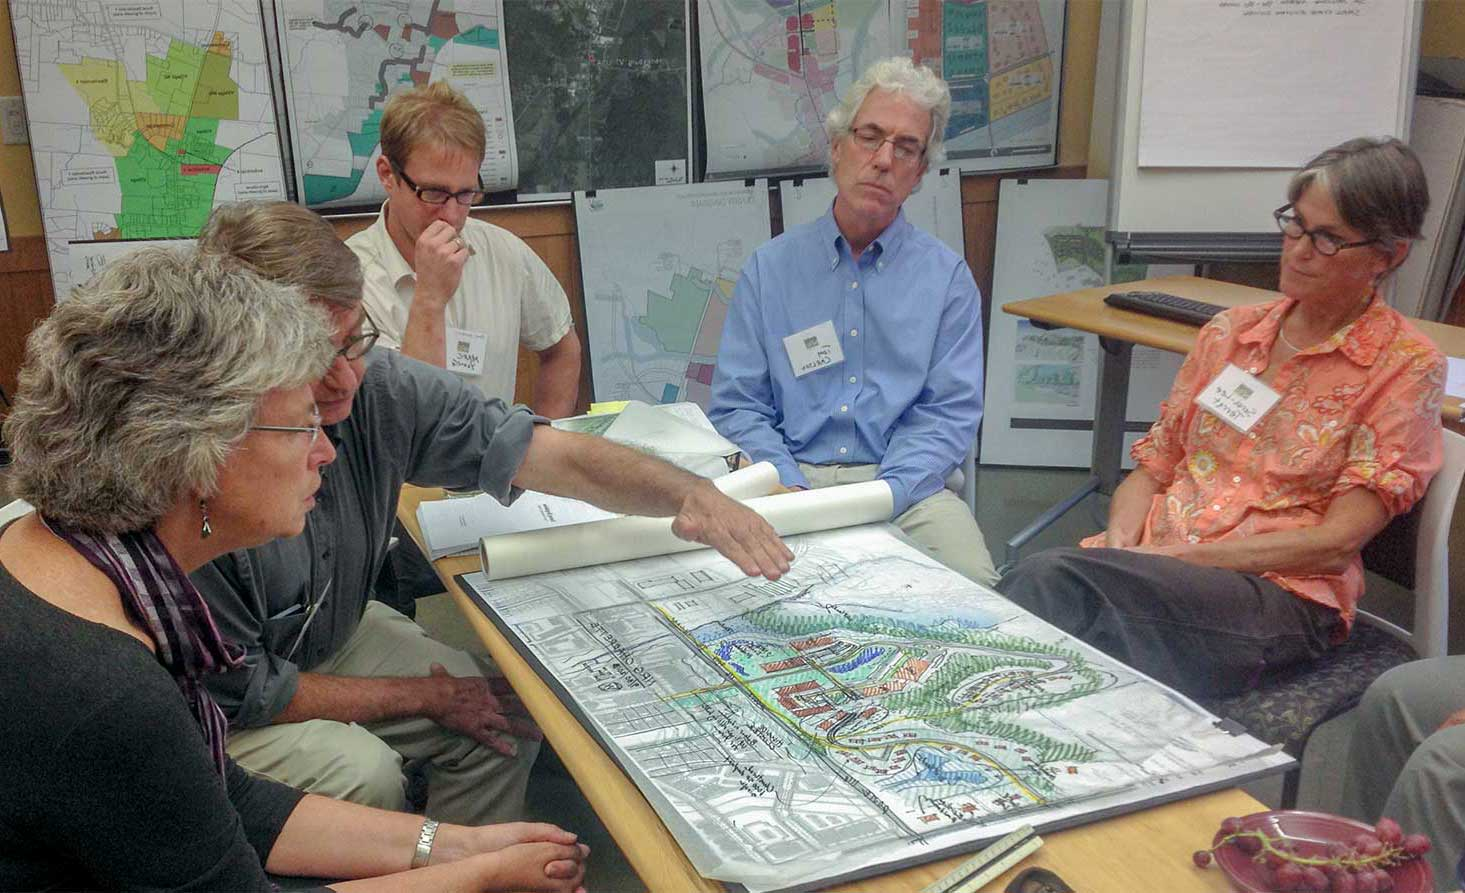 Maclay Architects has an open collaborative process